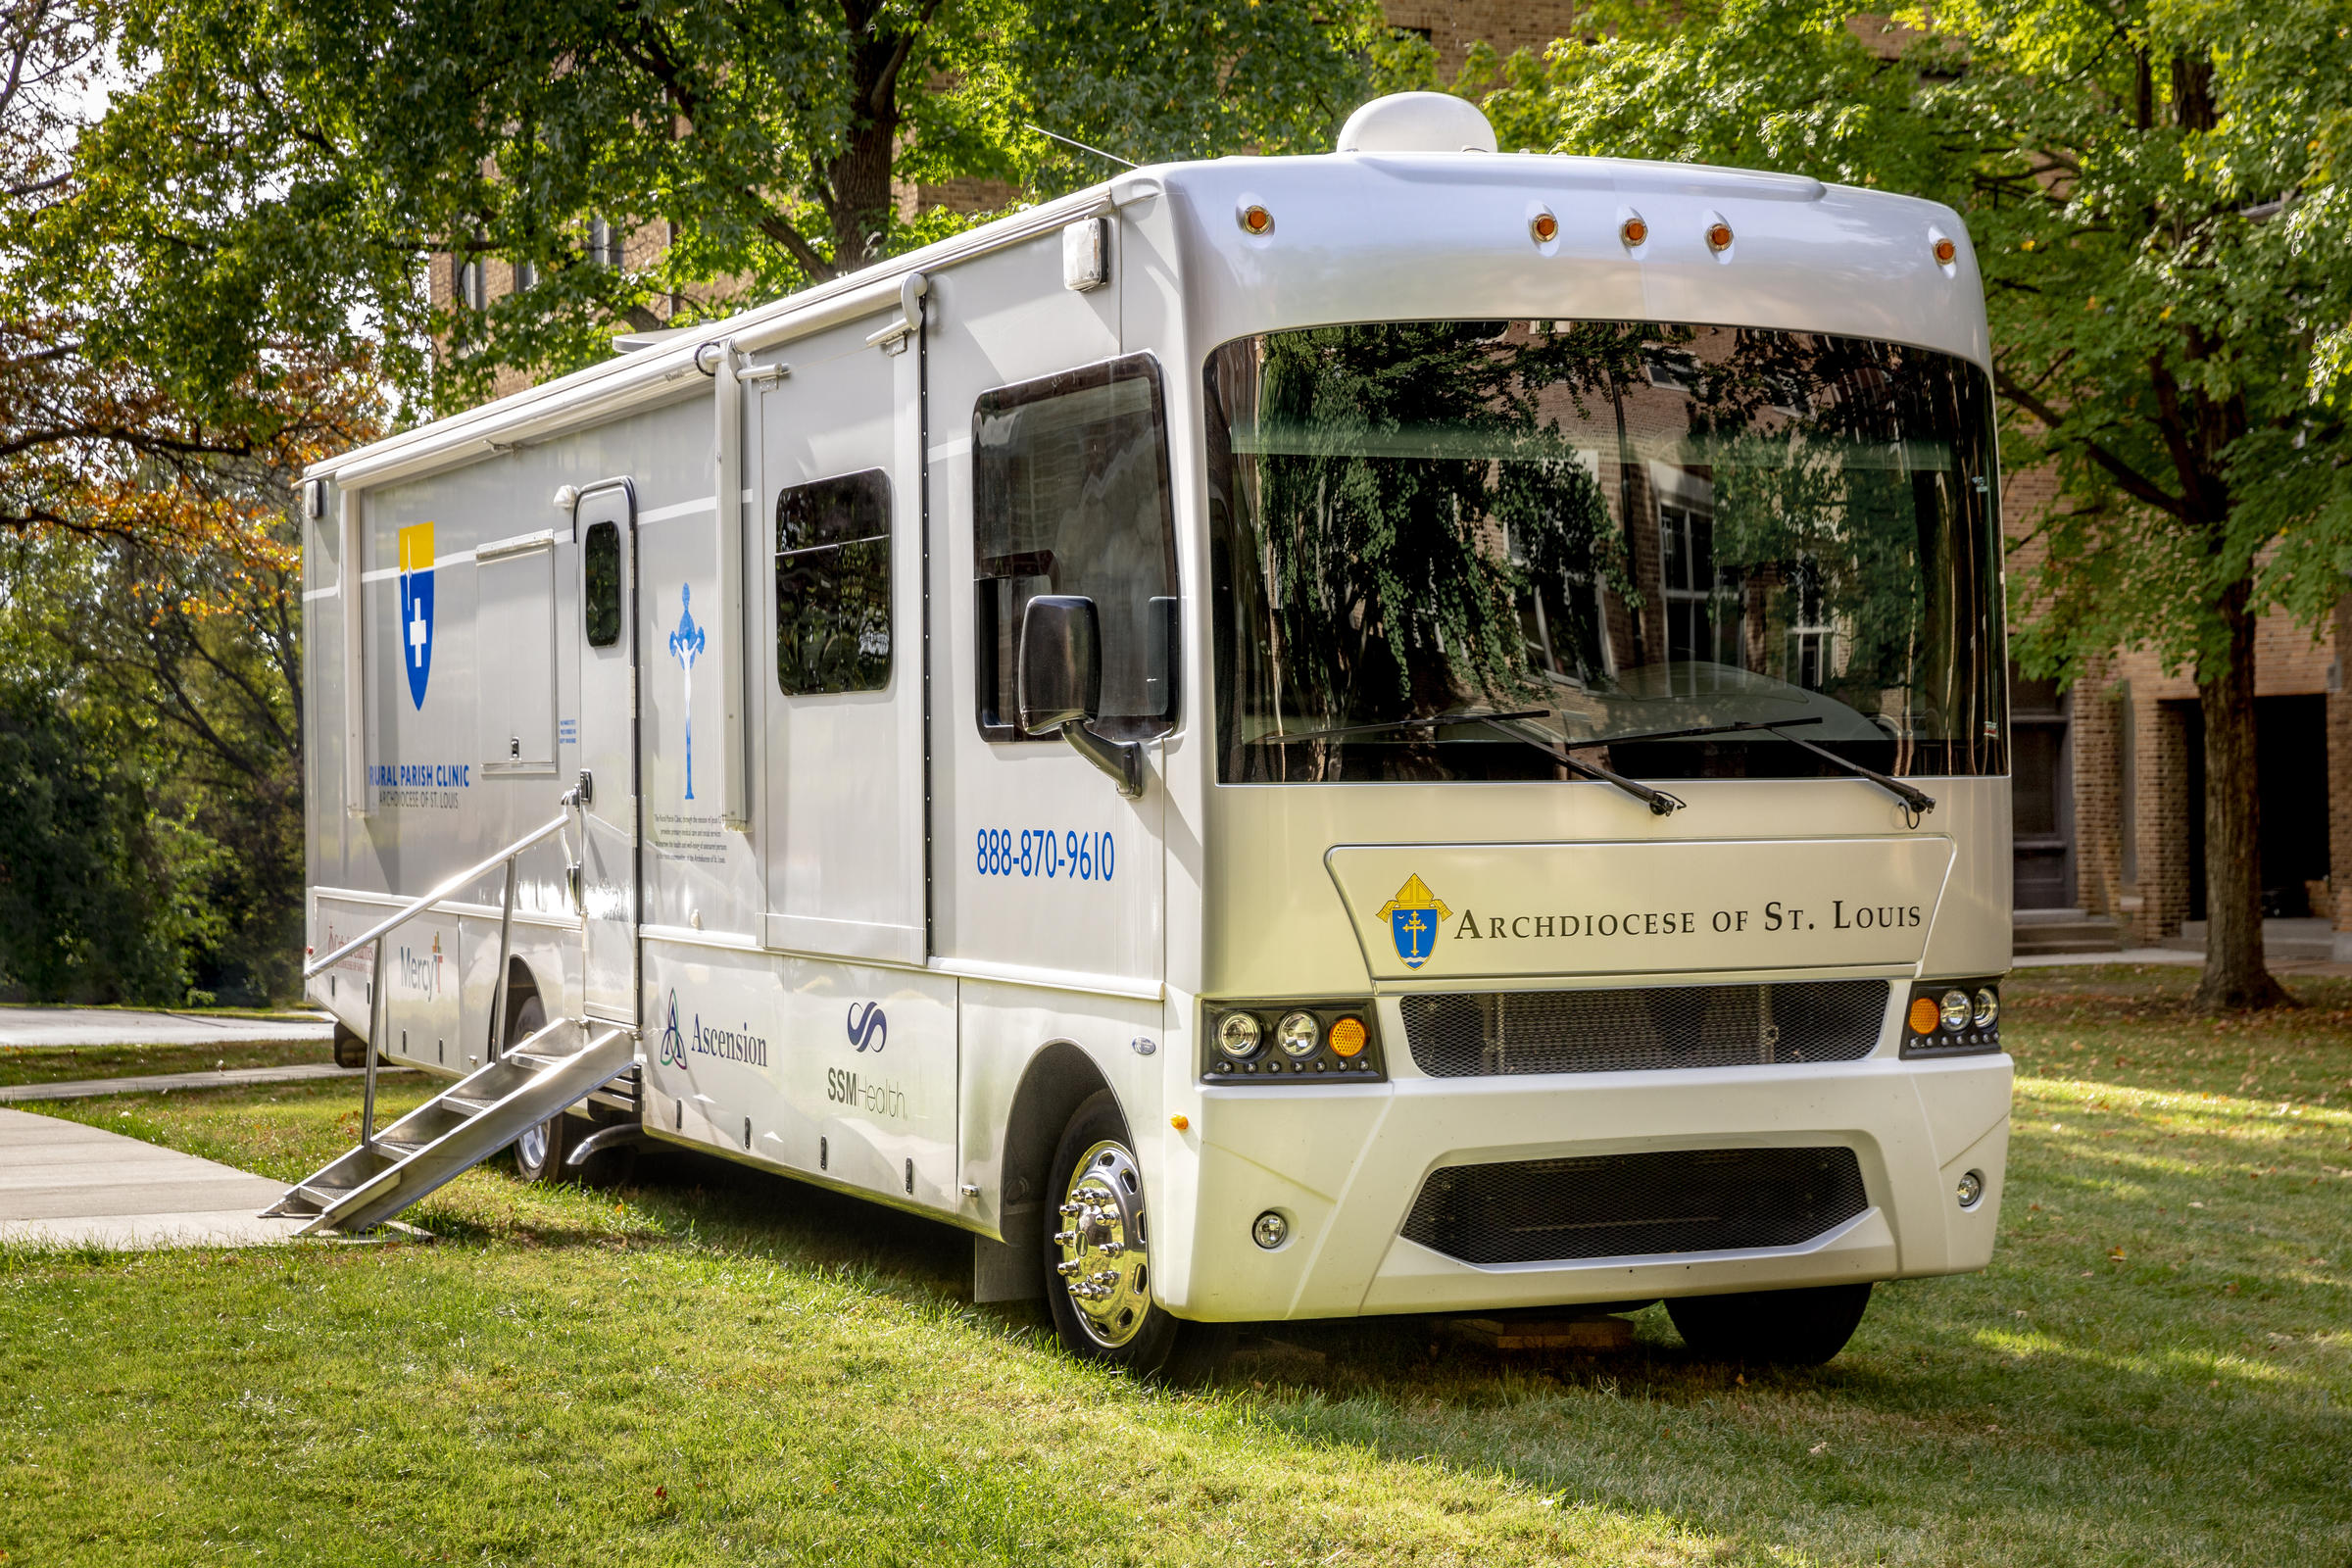 Archdiocese of St. Louis to open free, mobile, medical clinic for rural patients